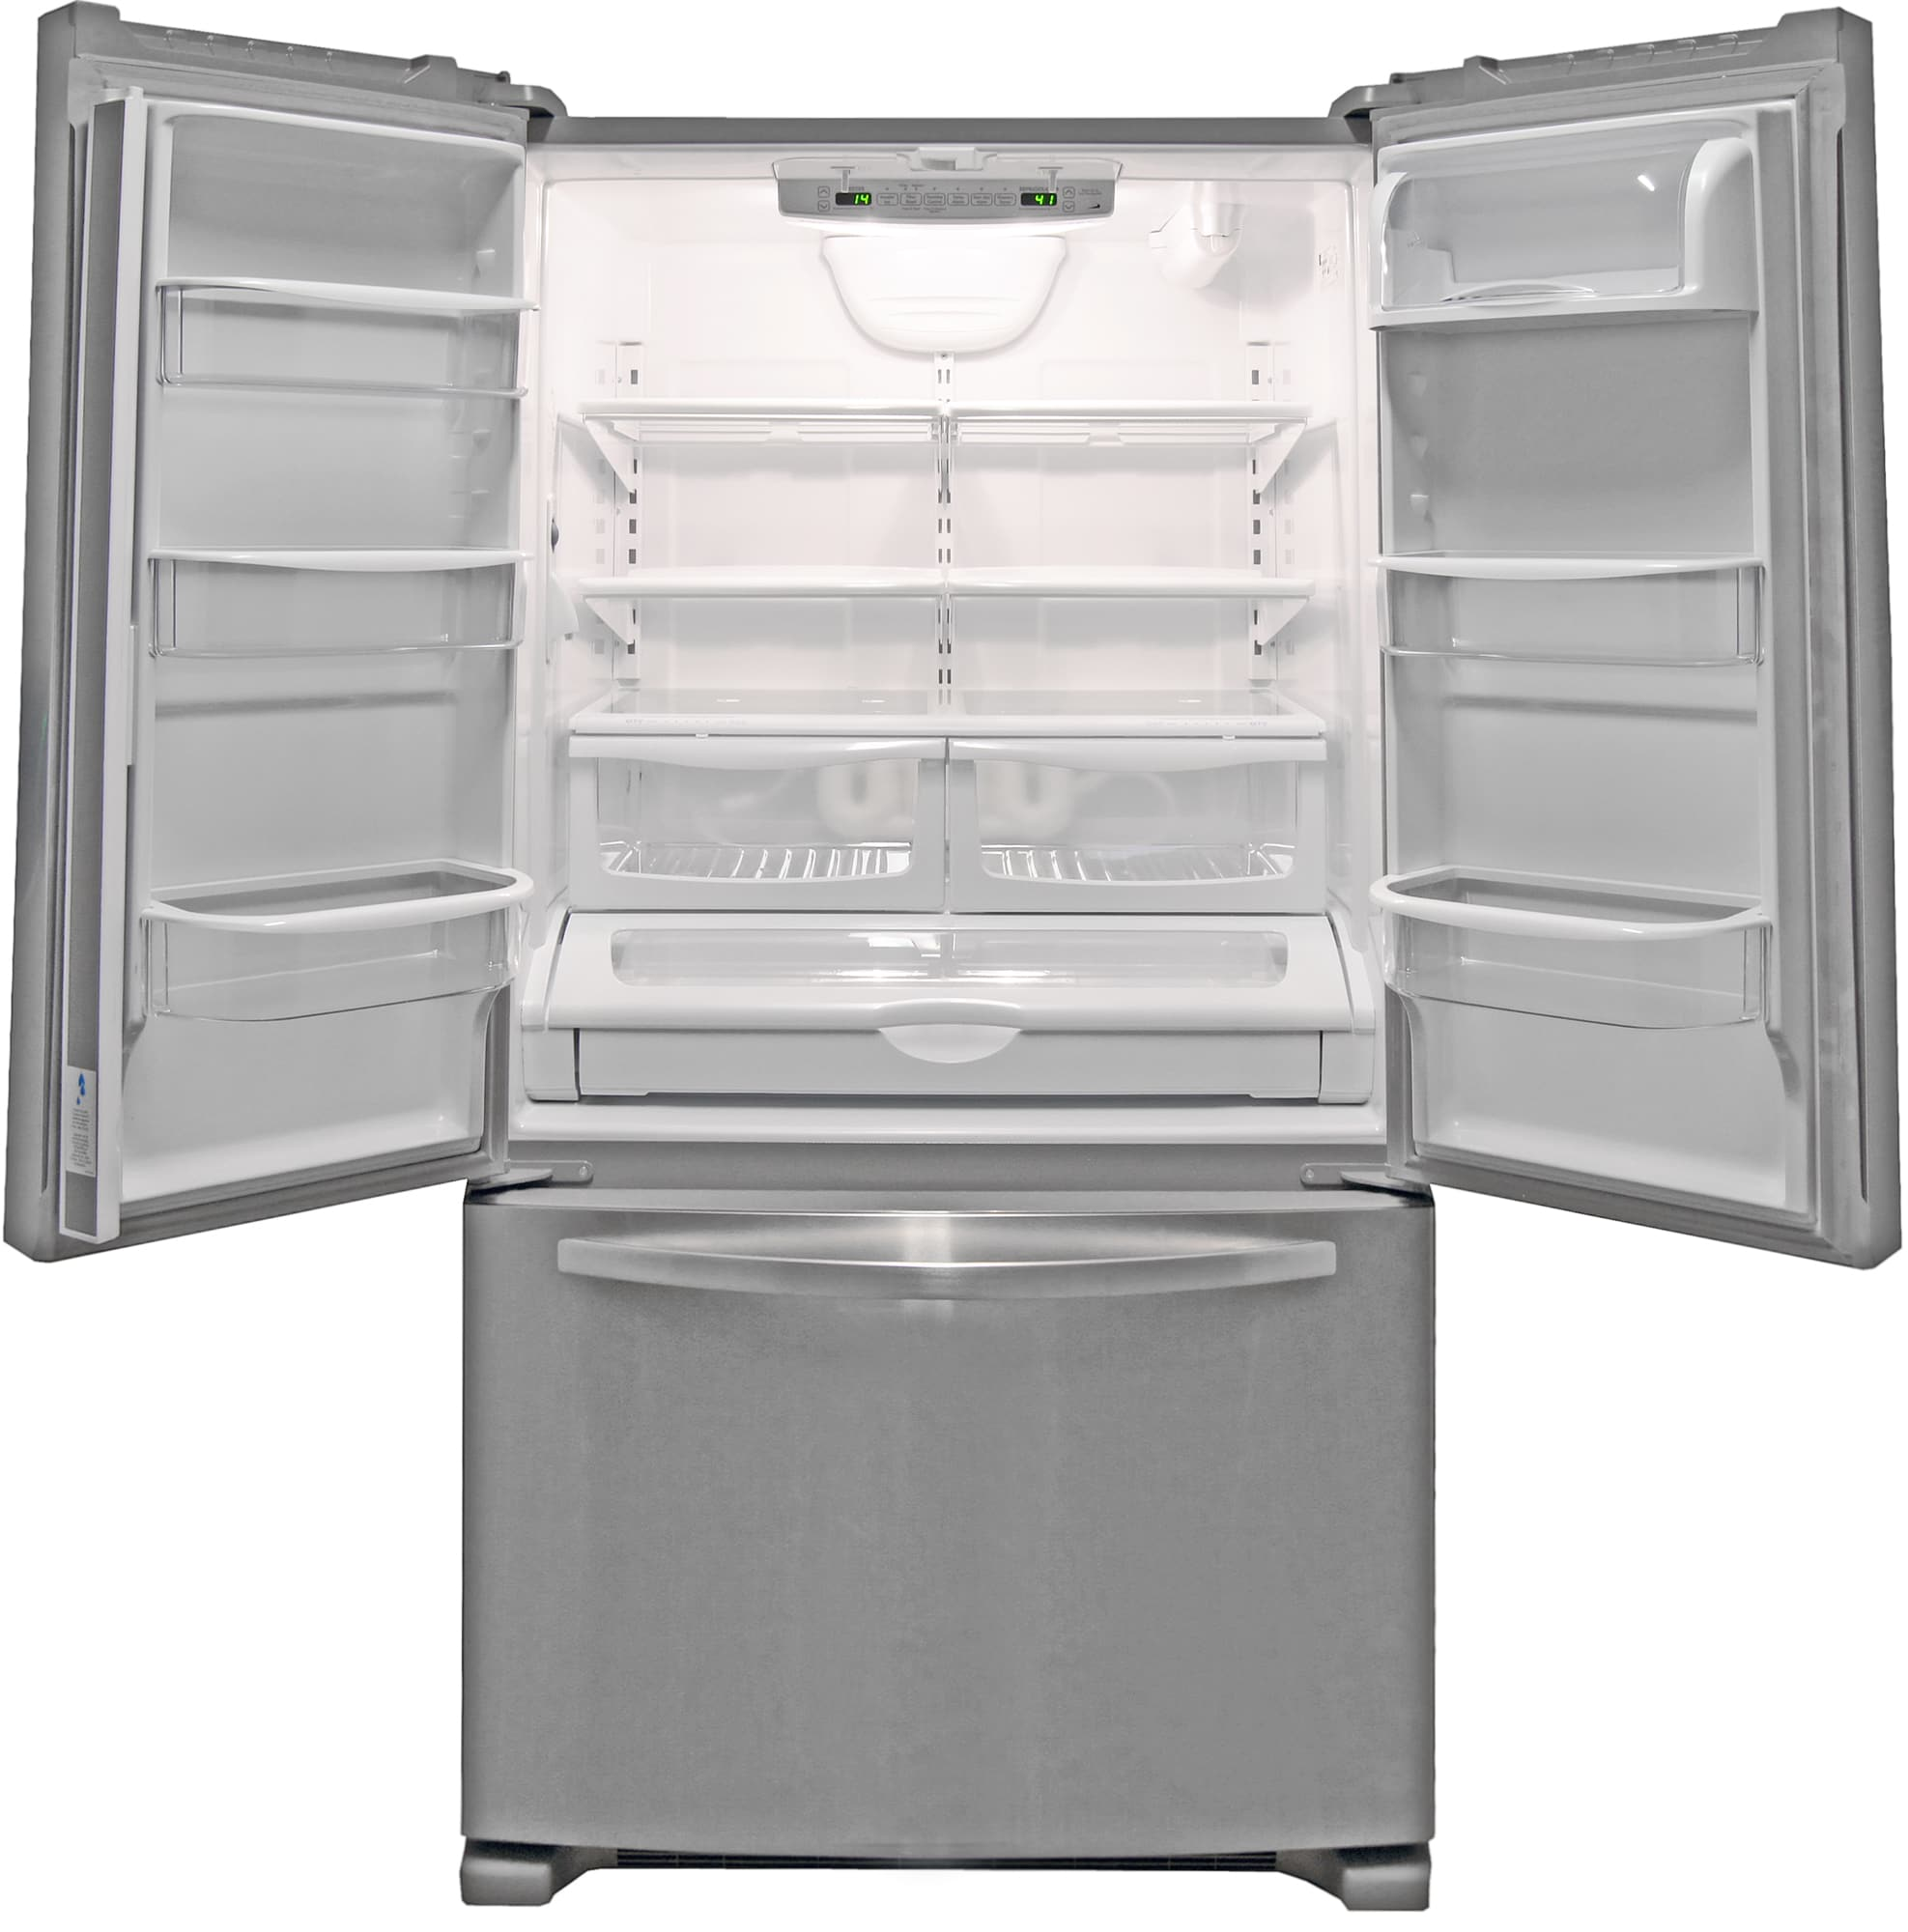 The Kenmore 72013 offers plenty of space for not a lot of money.